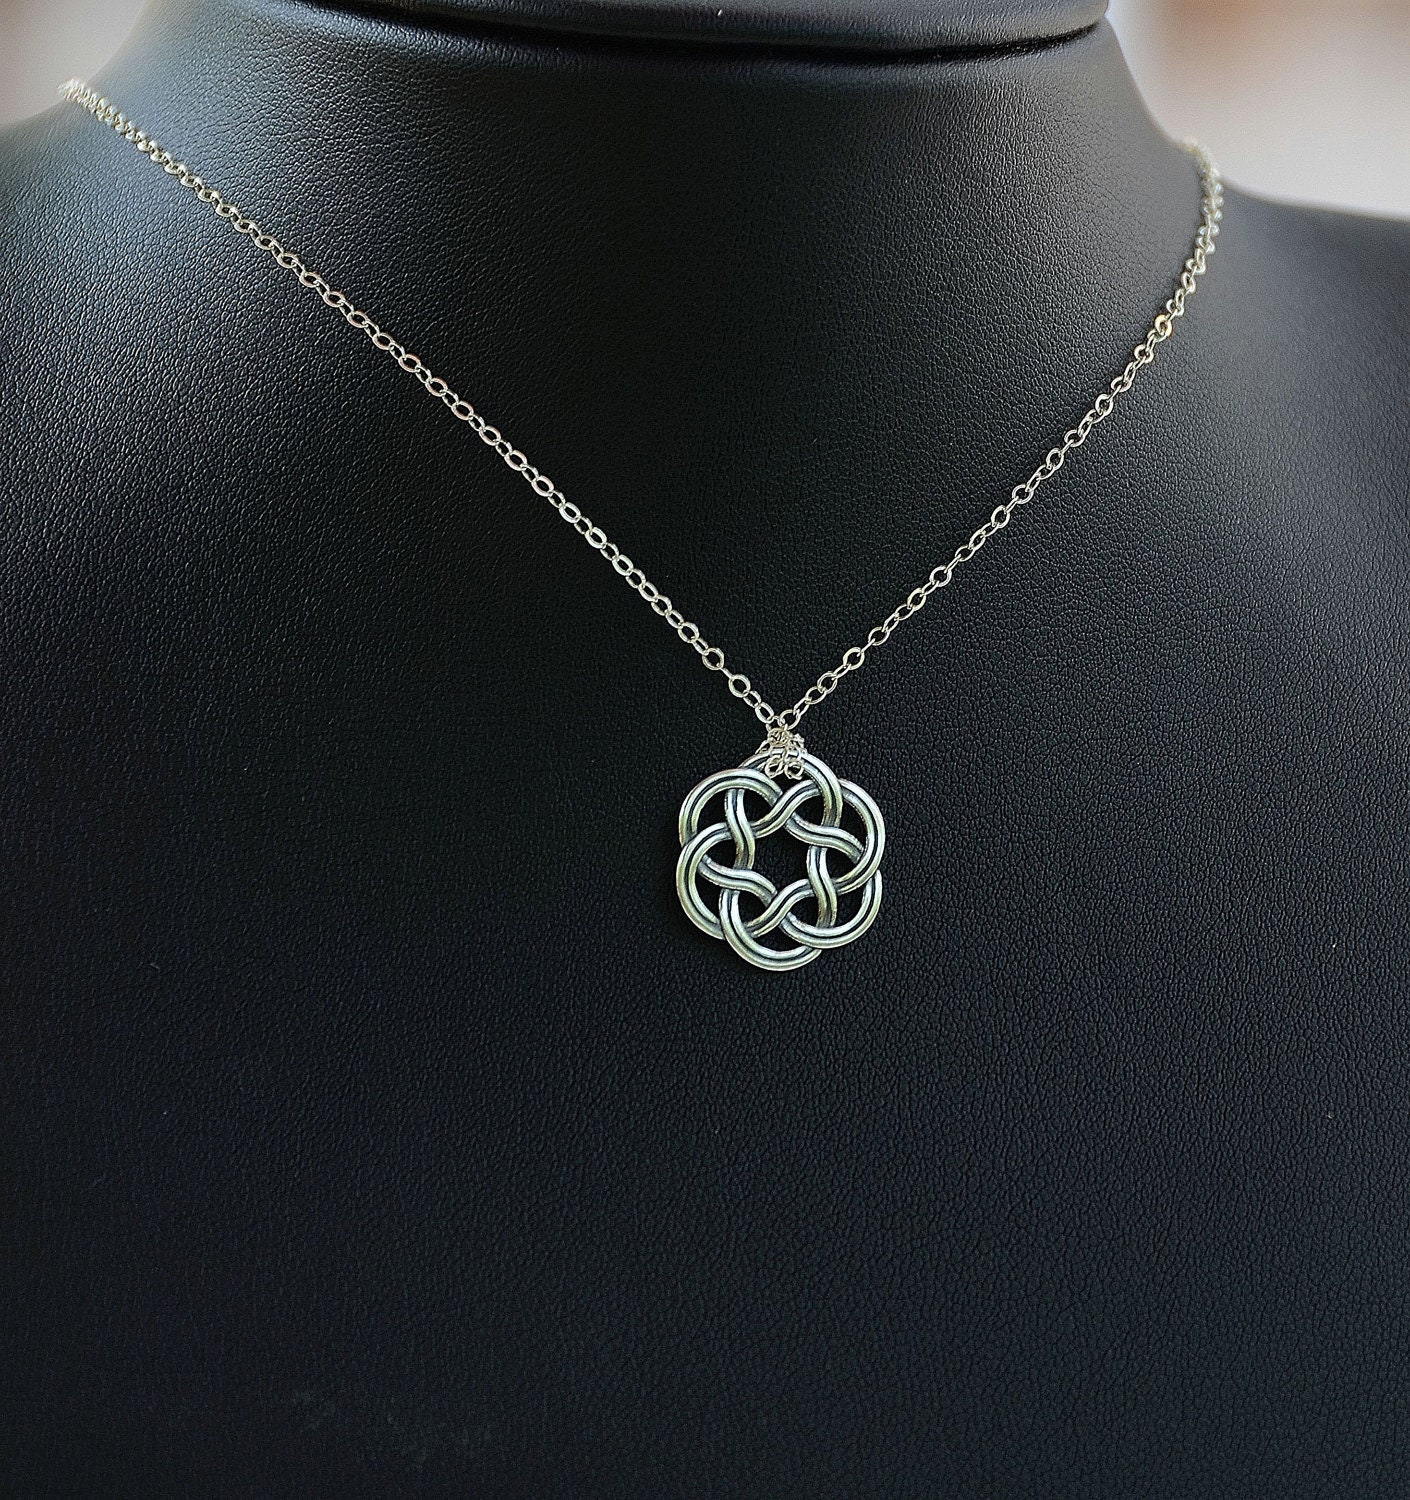 All sterling silver celtic necklace celtic jewelry celtic zoom mozeypictures Image collections